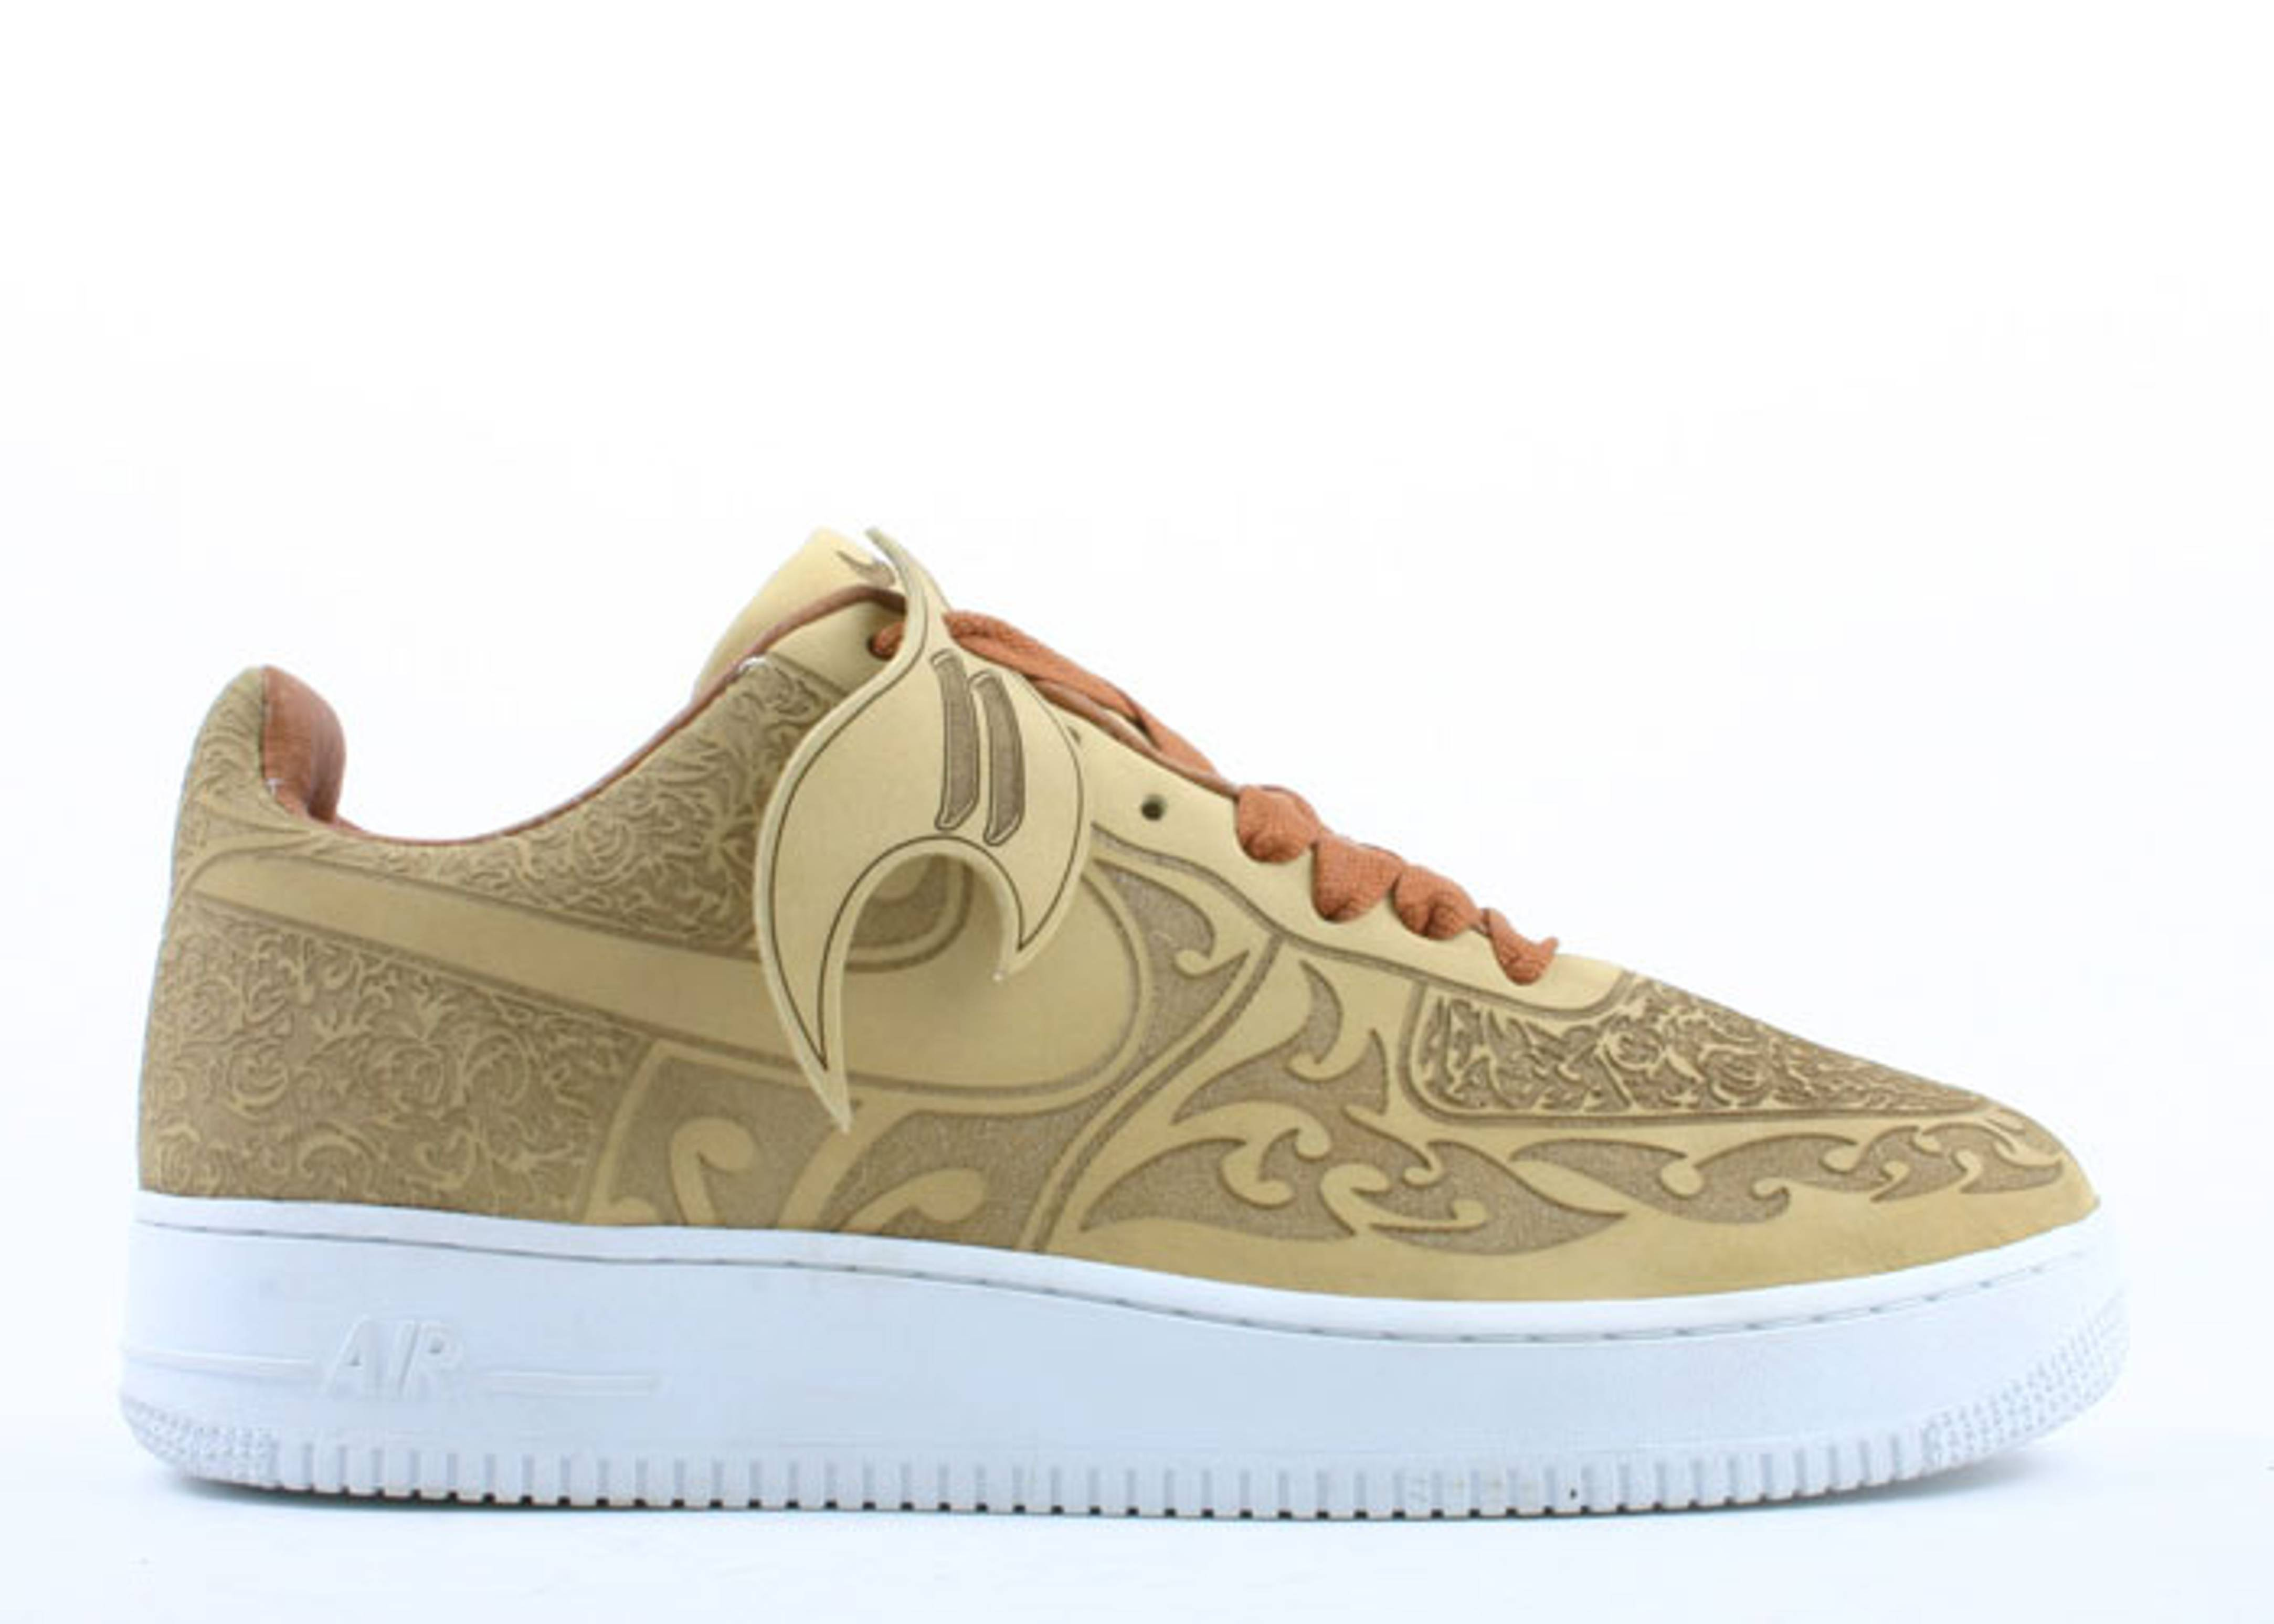 air force 1 premium by mark smith